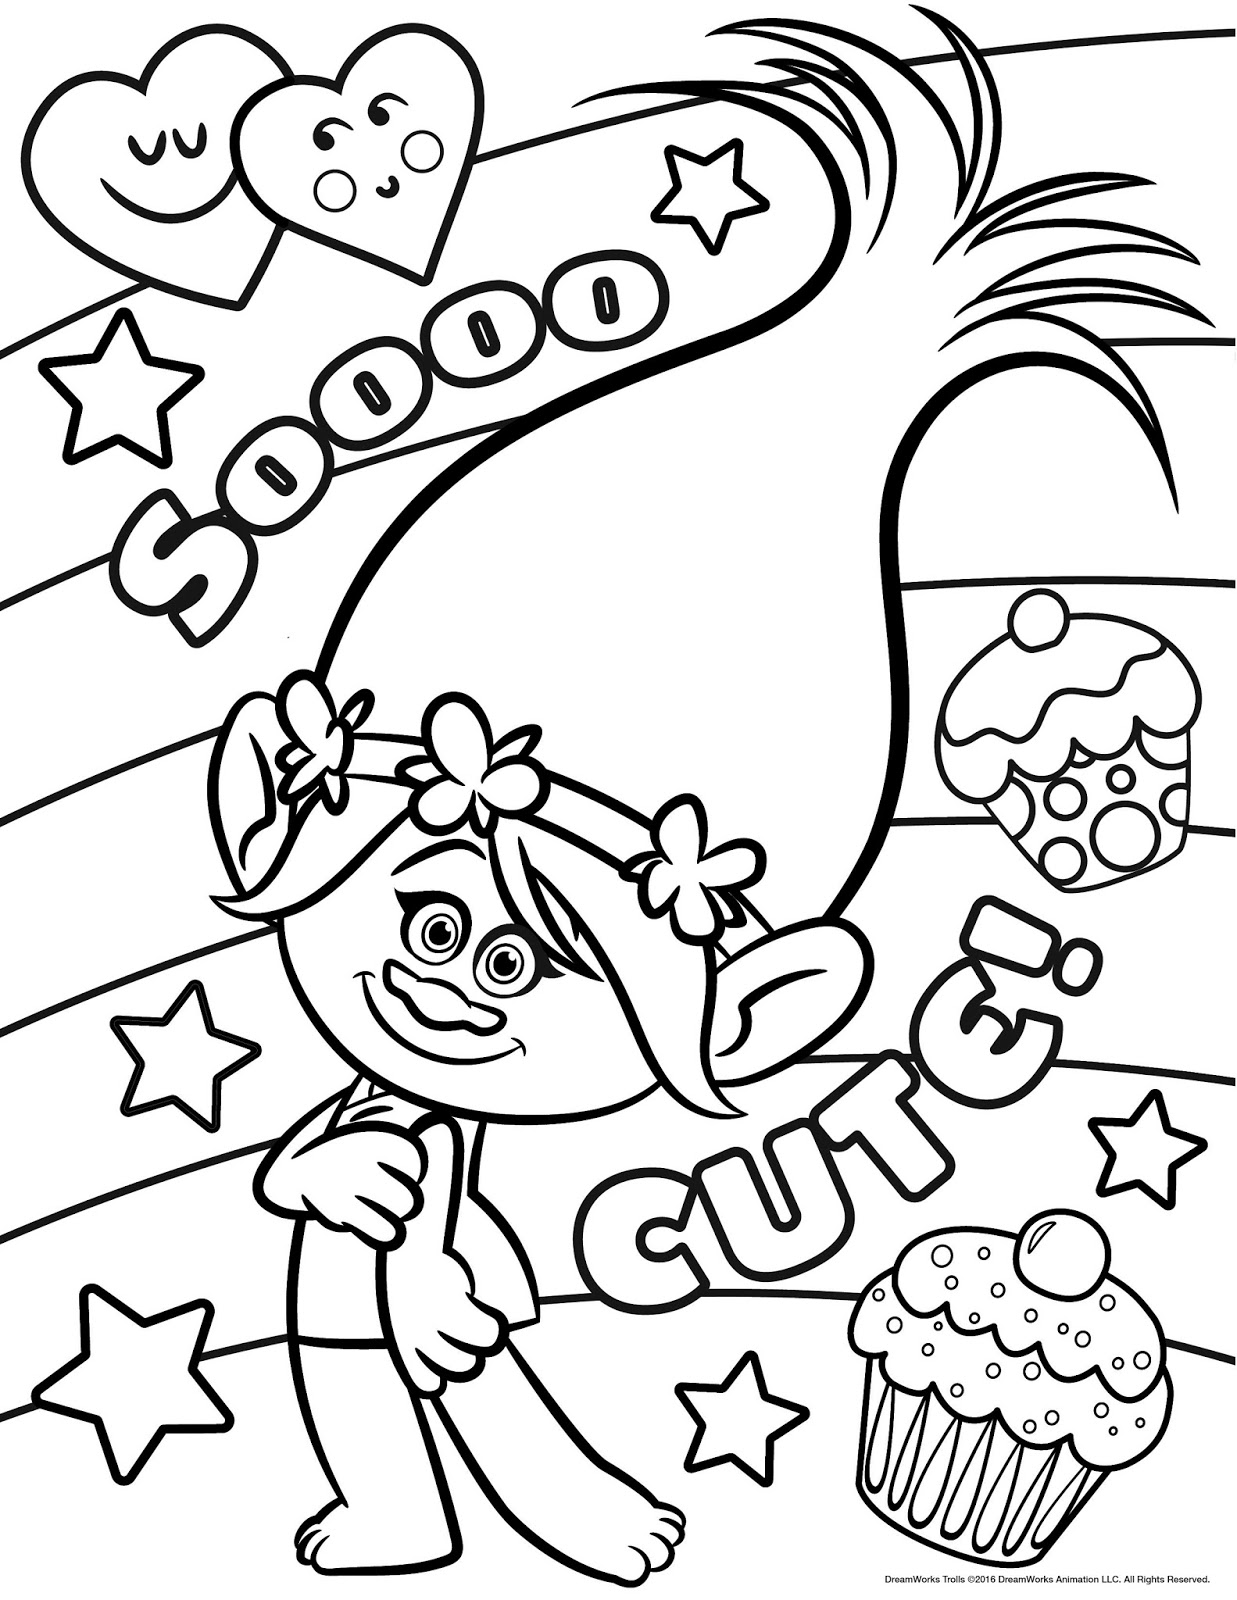 10 Newest Troll Coloring Page For Kids